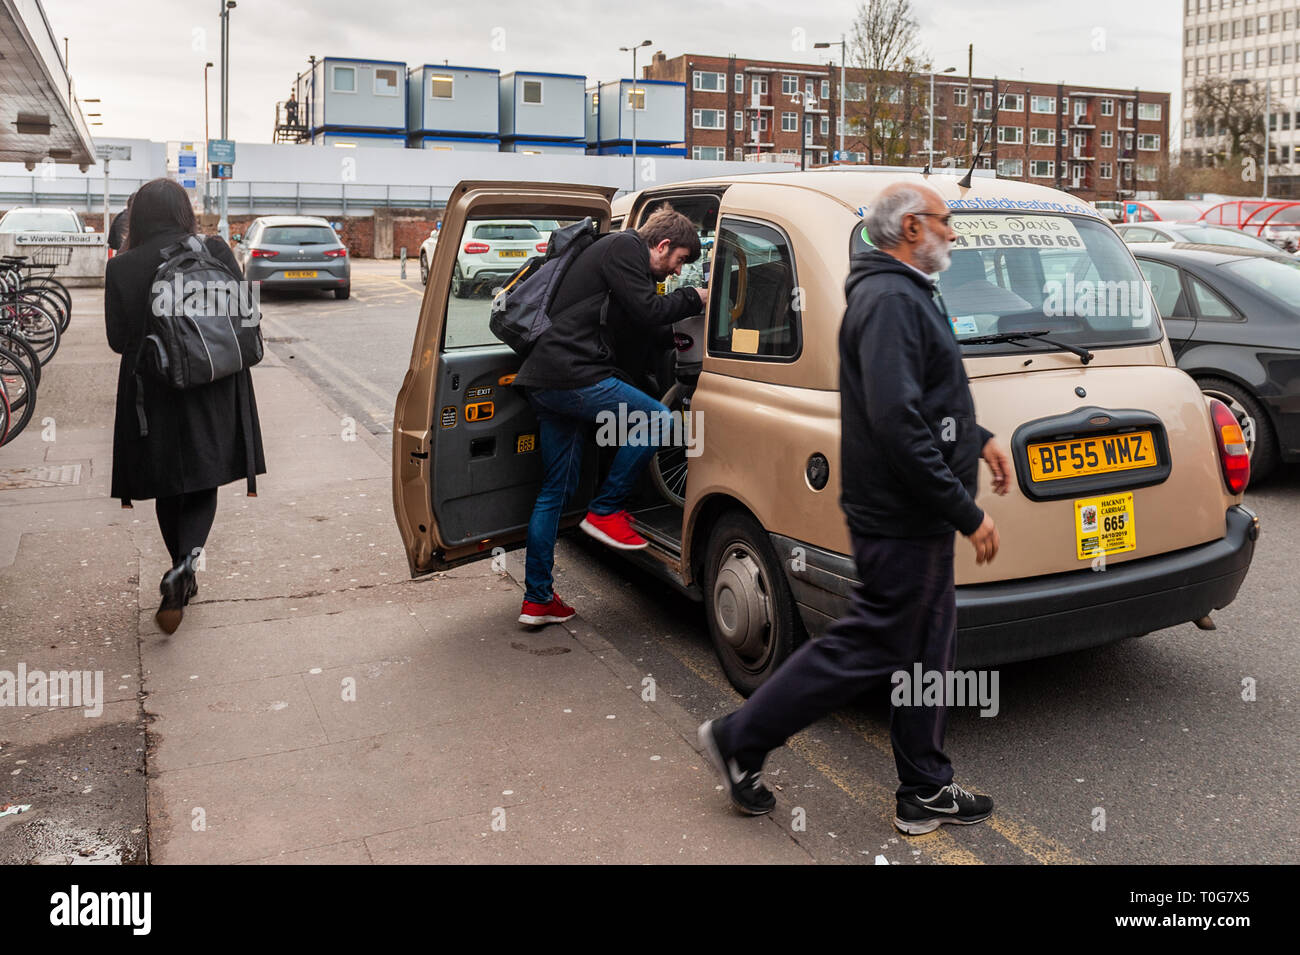 Man gets into a taxi outside Coventry Railway Station, Coventry, West Midlands, UK. - Stock Image